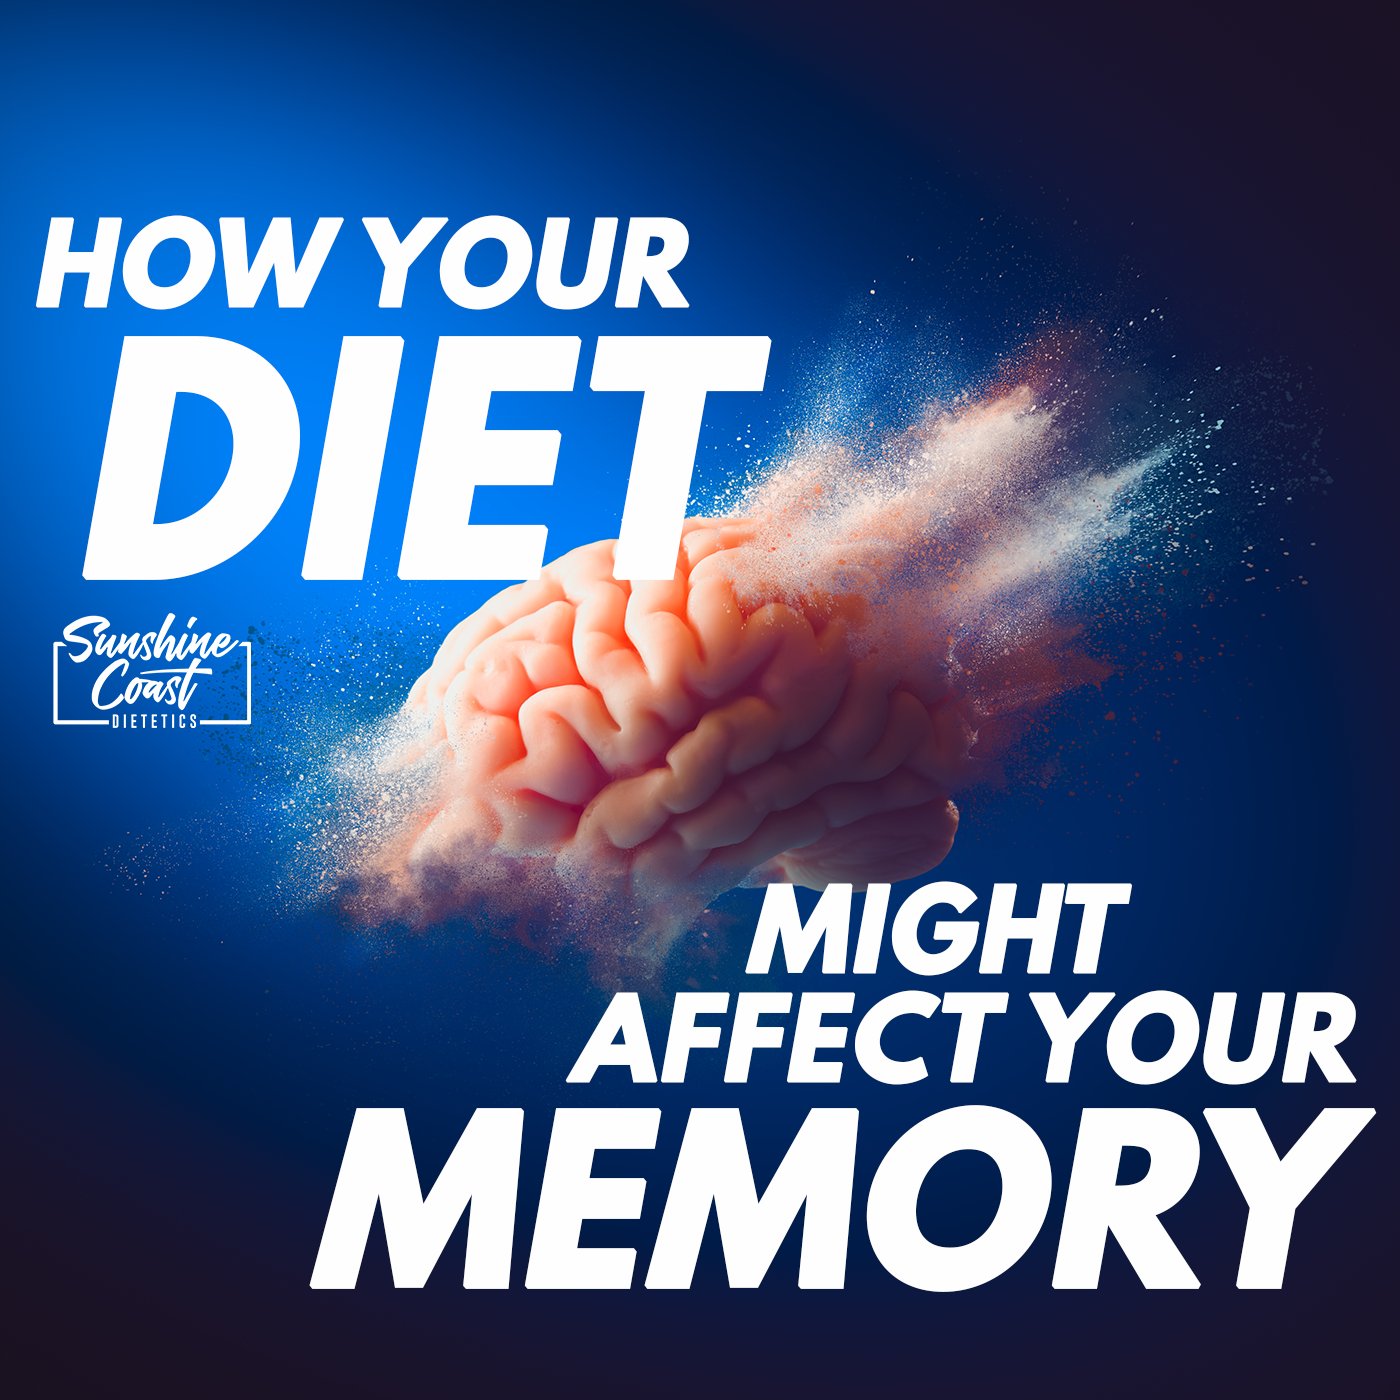 How Your Diet Might Affect Your Memory